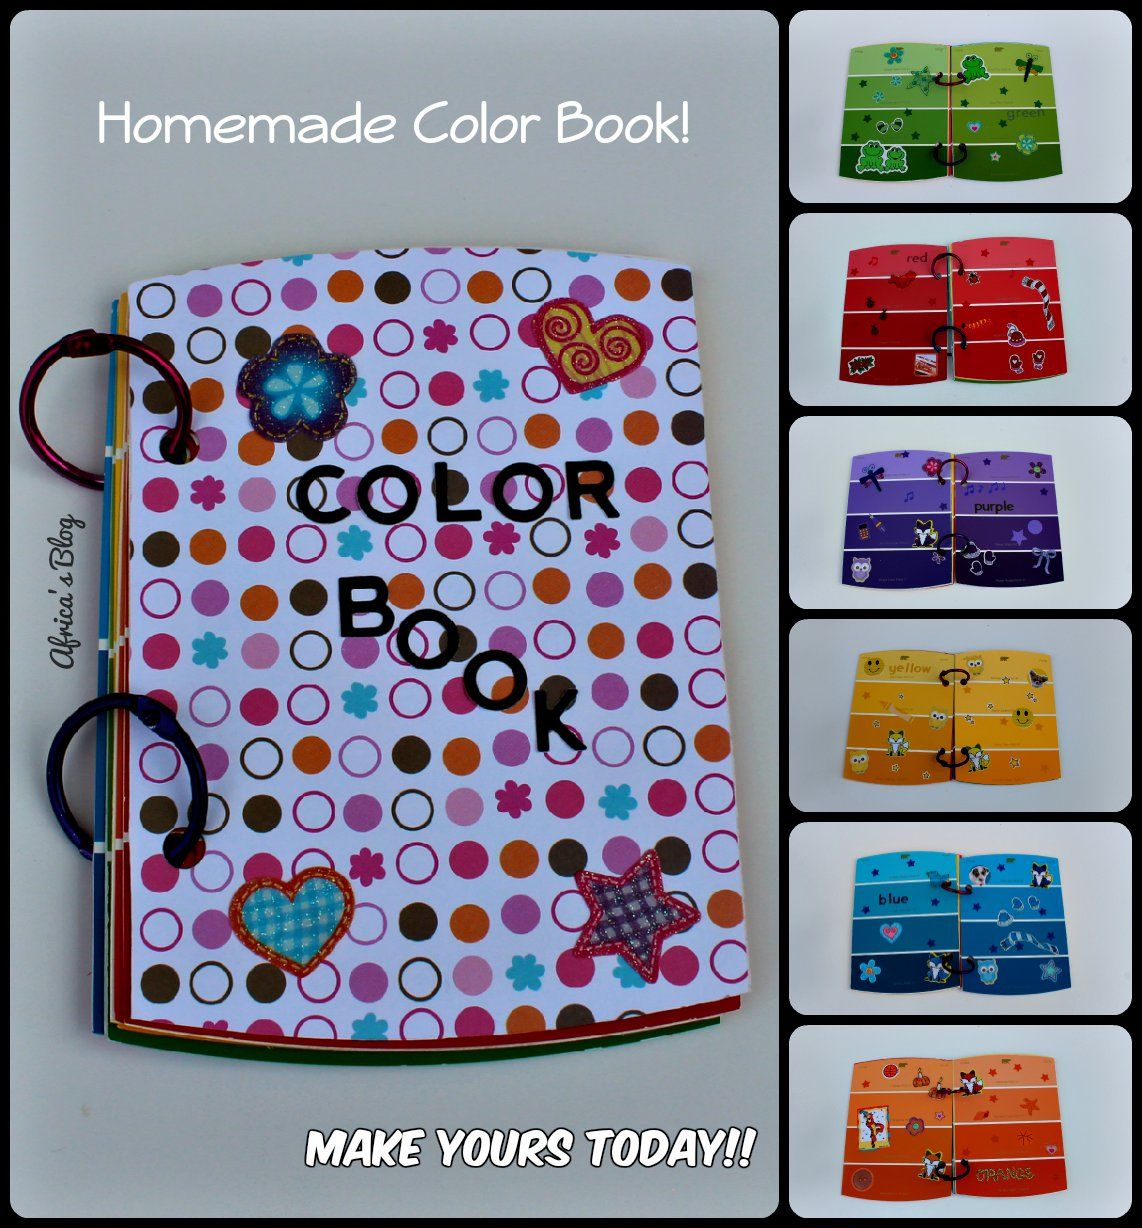 teach your toddler colors homemade color book - Color Book For Toddler